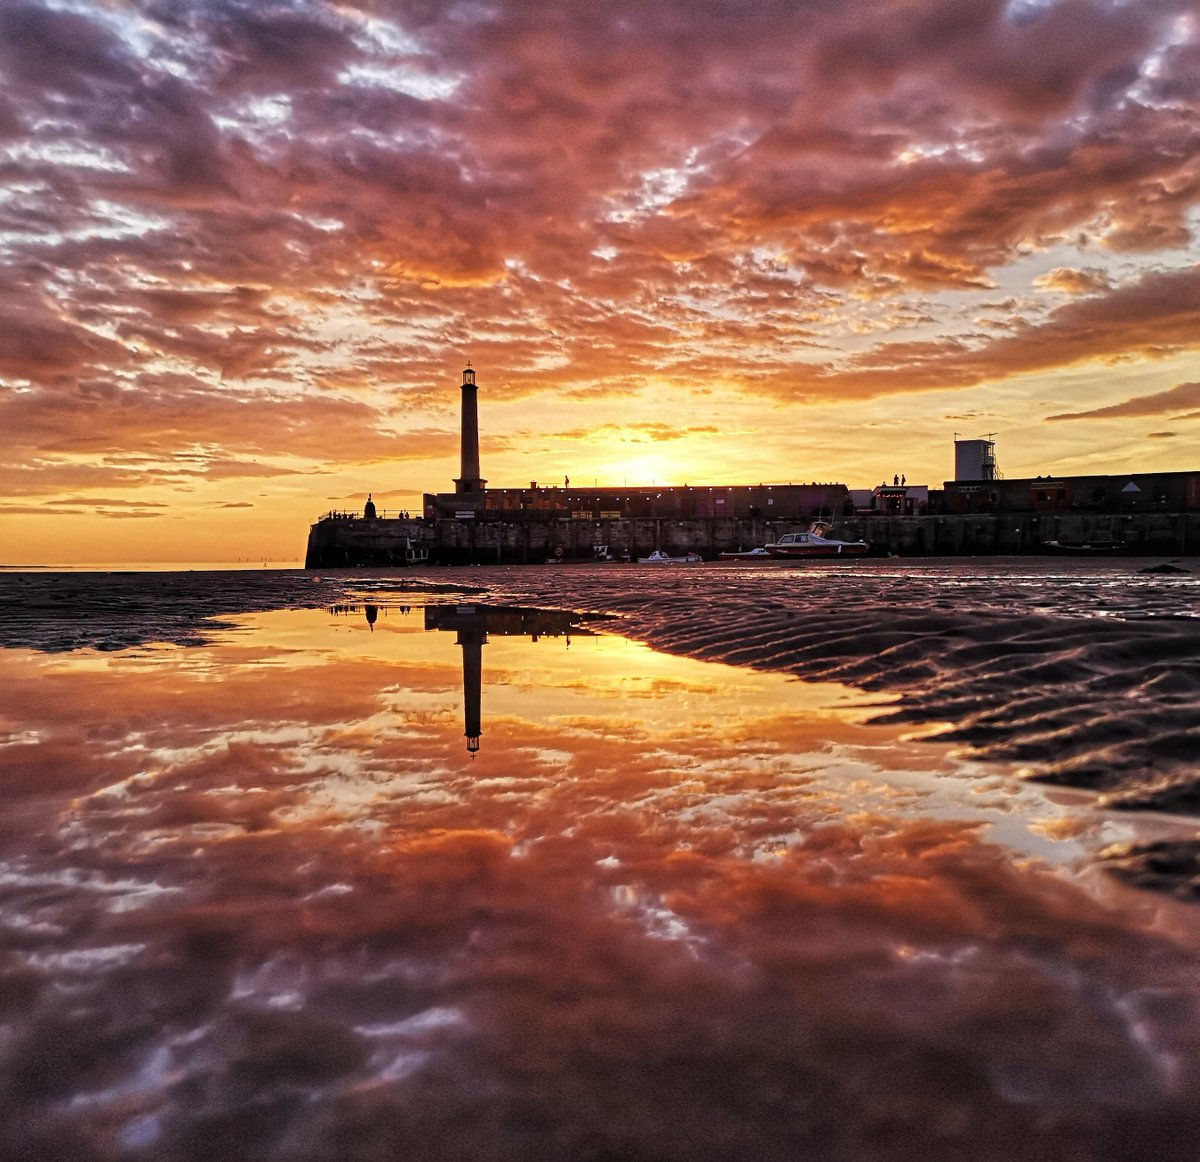 Wow, what a reflection! The texture of the clouds is so clear in the water, you can turn this picture around a few times and be tricked as to what's real! Andy Hillier shot this at Margate. #PhotoOfTheDay pic.twitter.com/EnI1vDmJmn